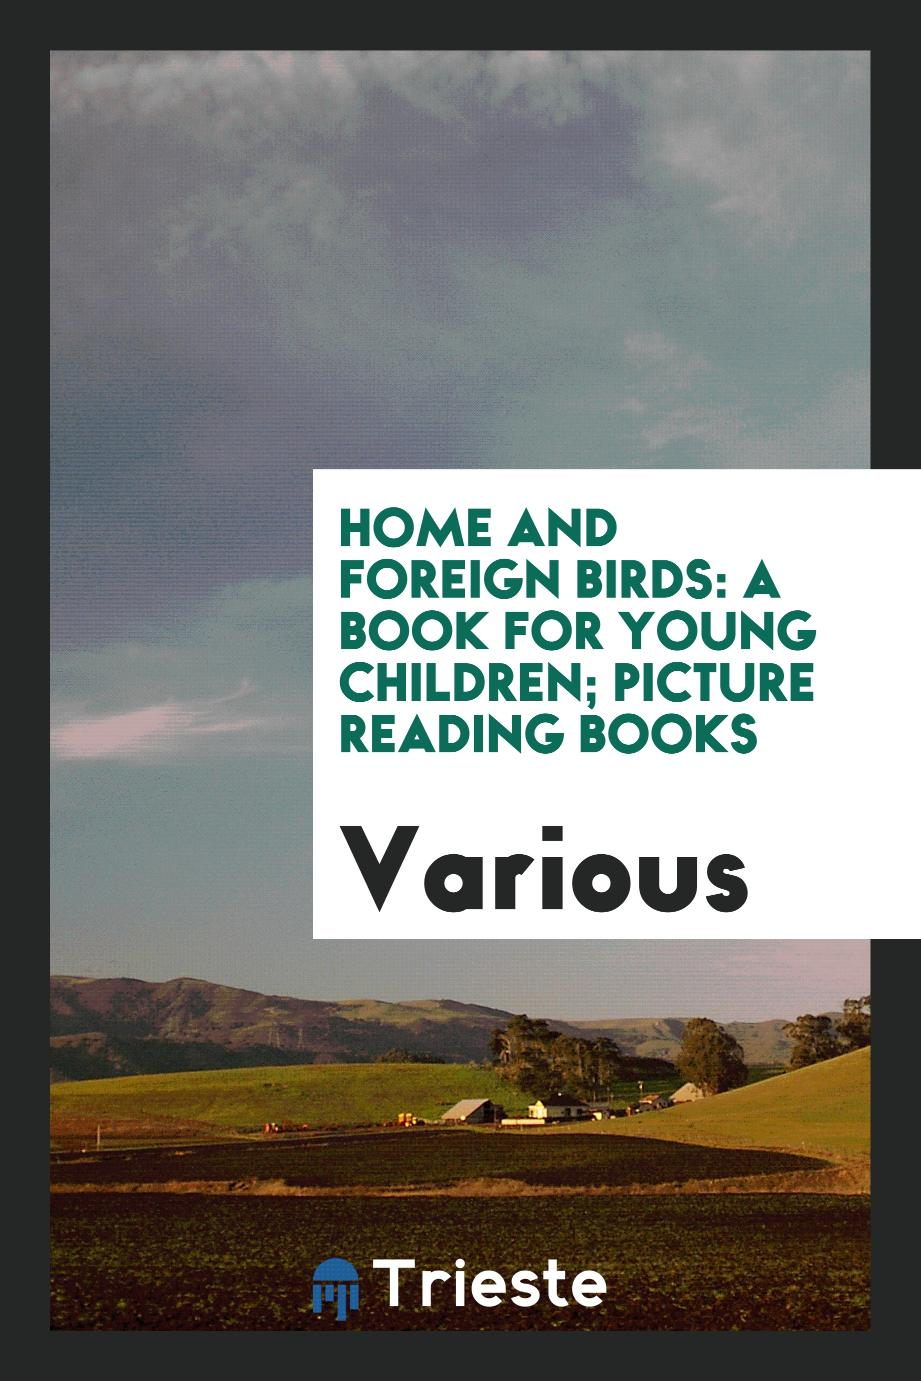 Home and Foreign Birds: A Book for Young Children; Picture reading books